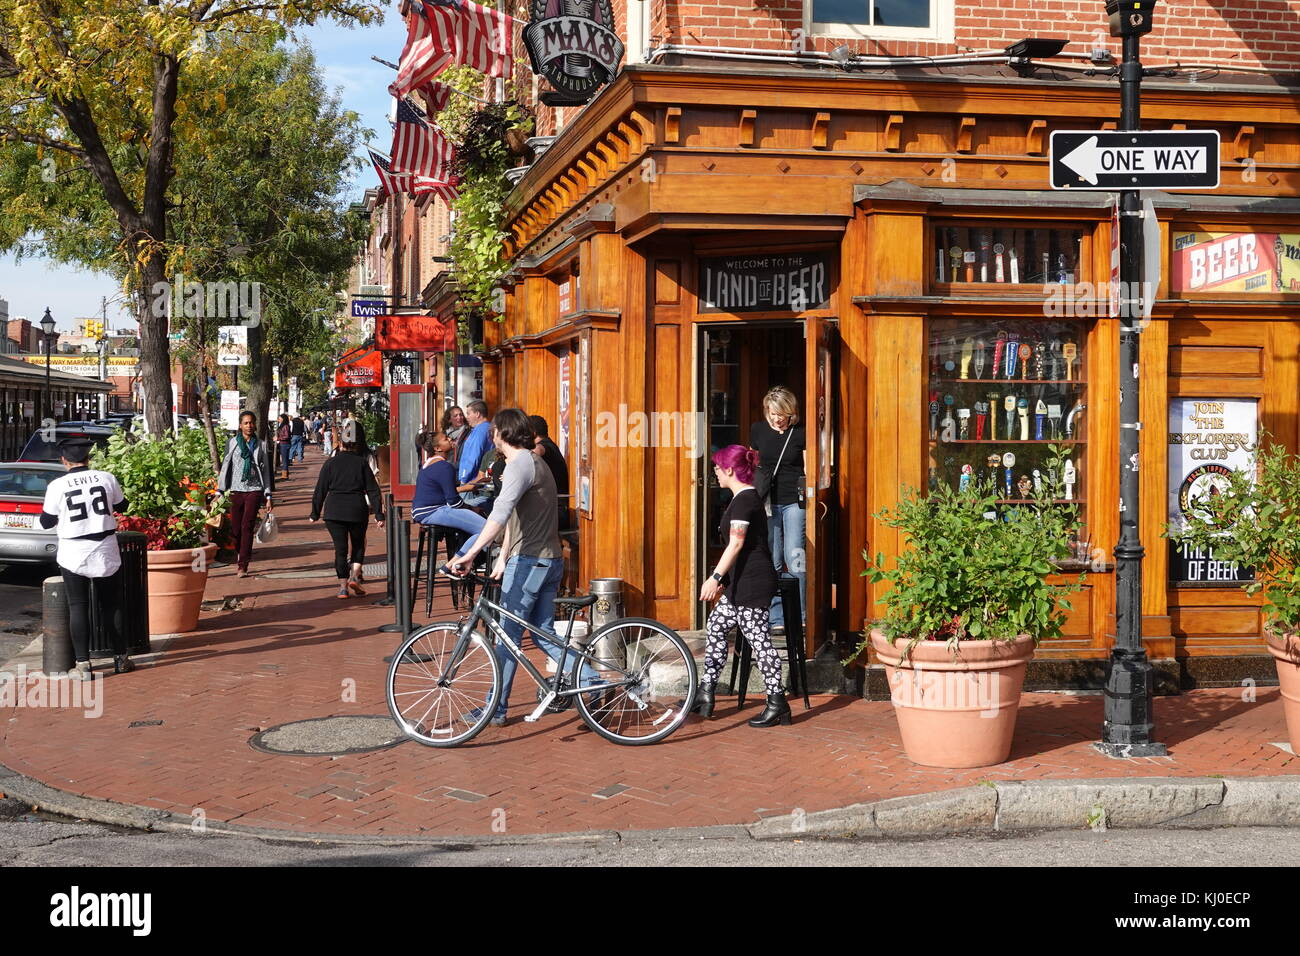 USA Maryland Baltimore Fells Point Max's Taproom Bar and Restaurant on Broadway - Stock Image